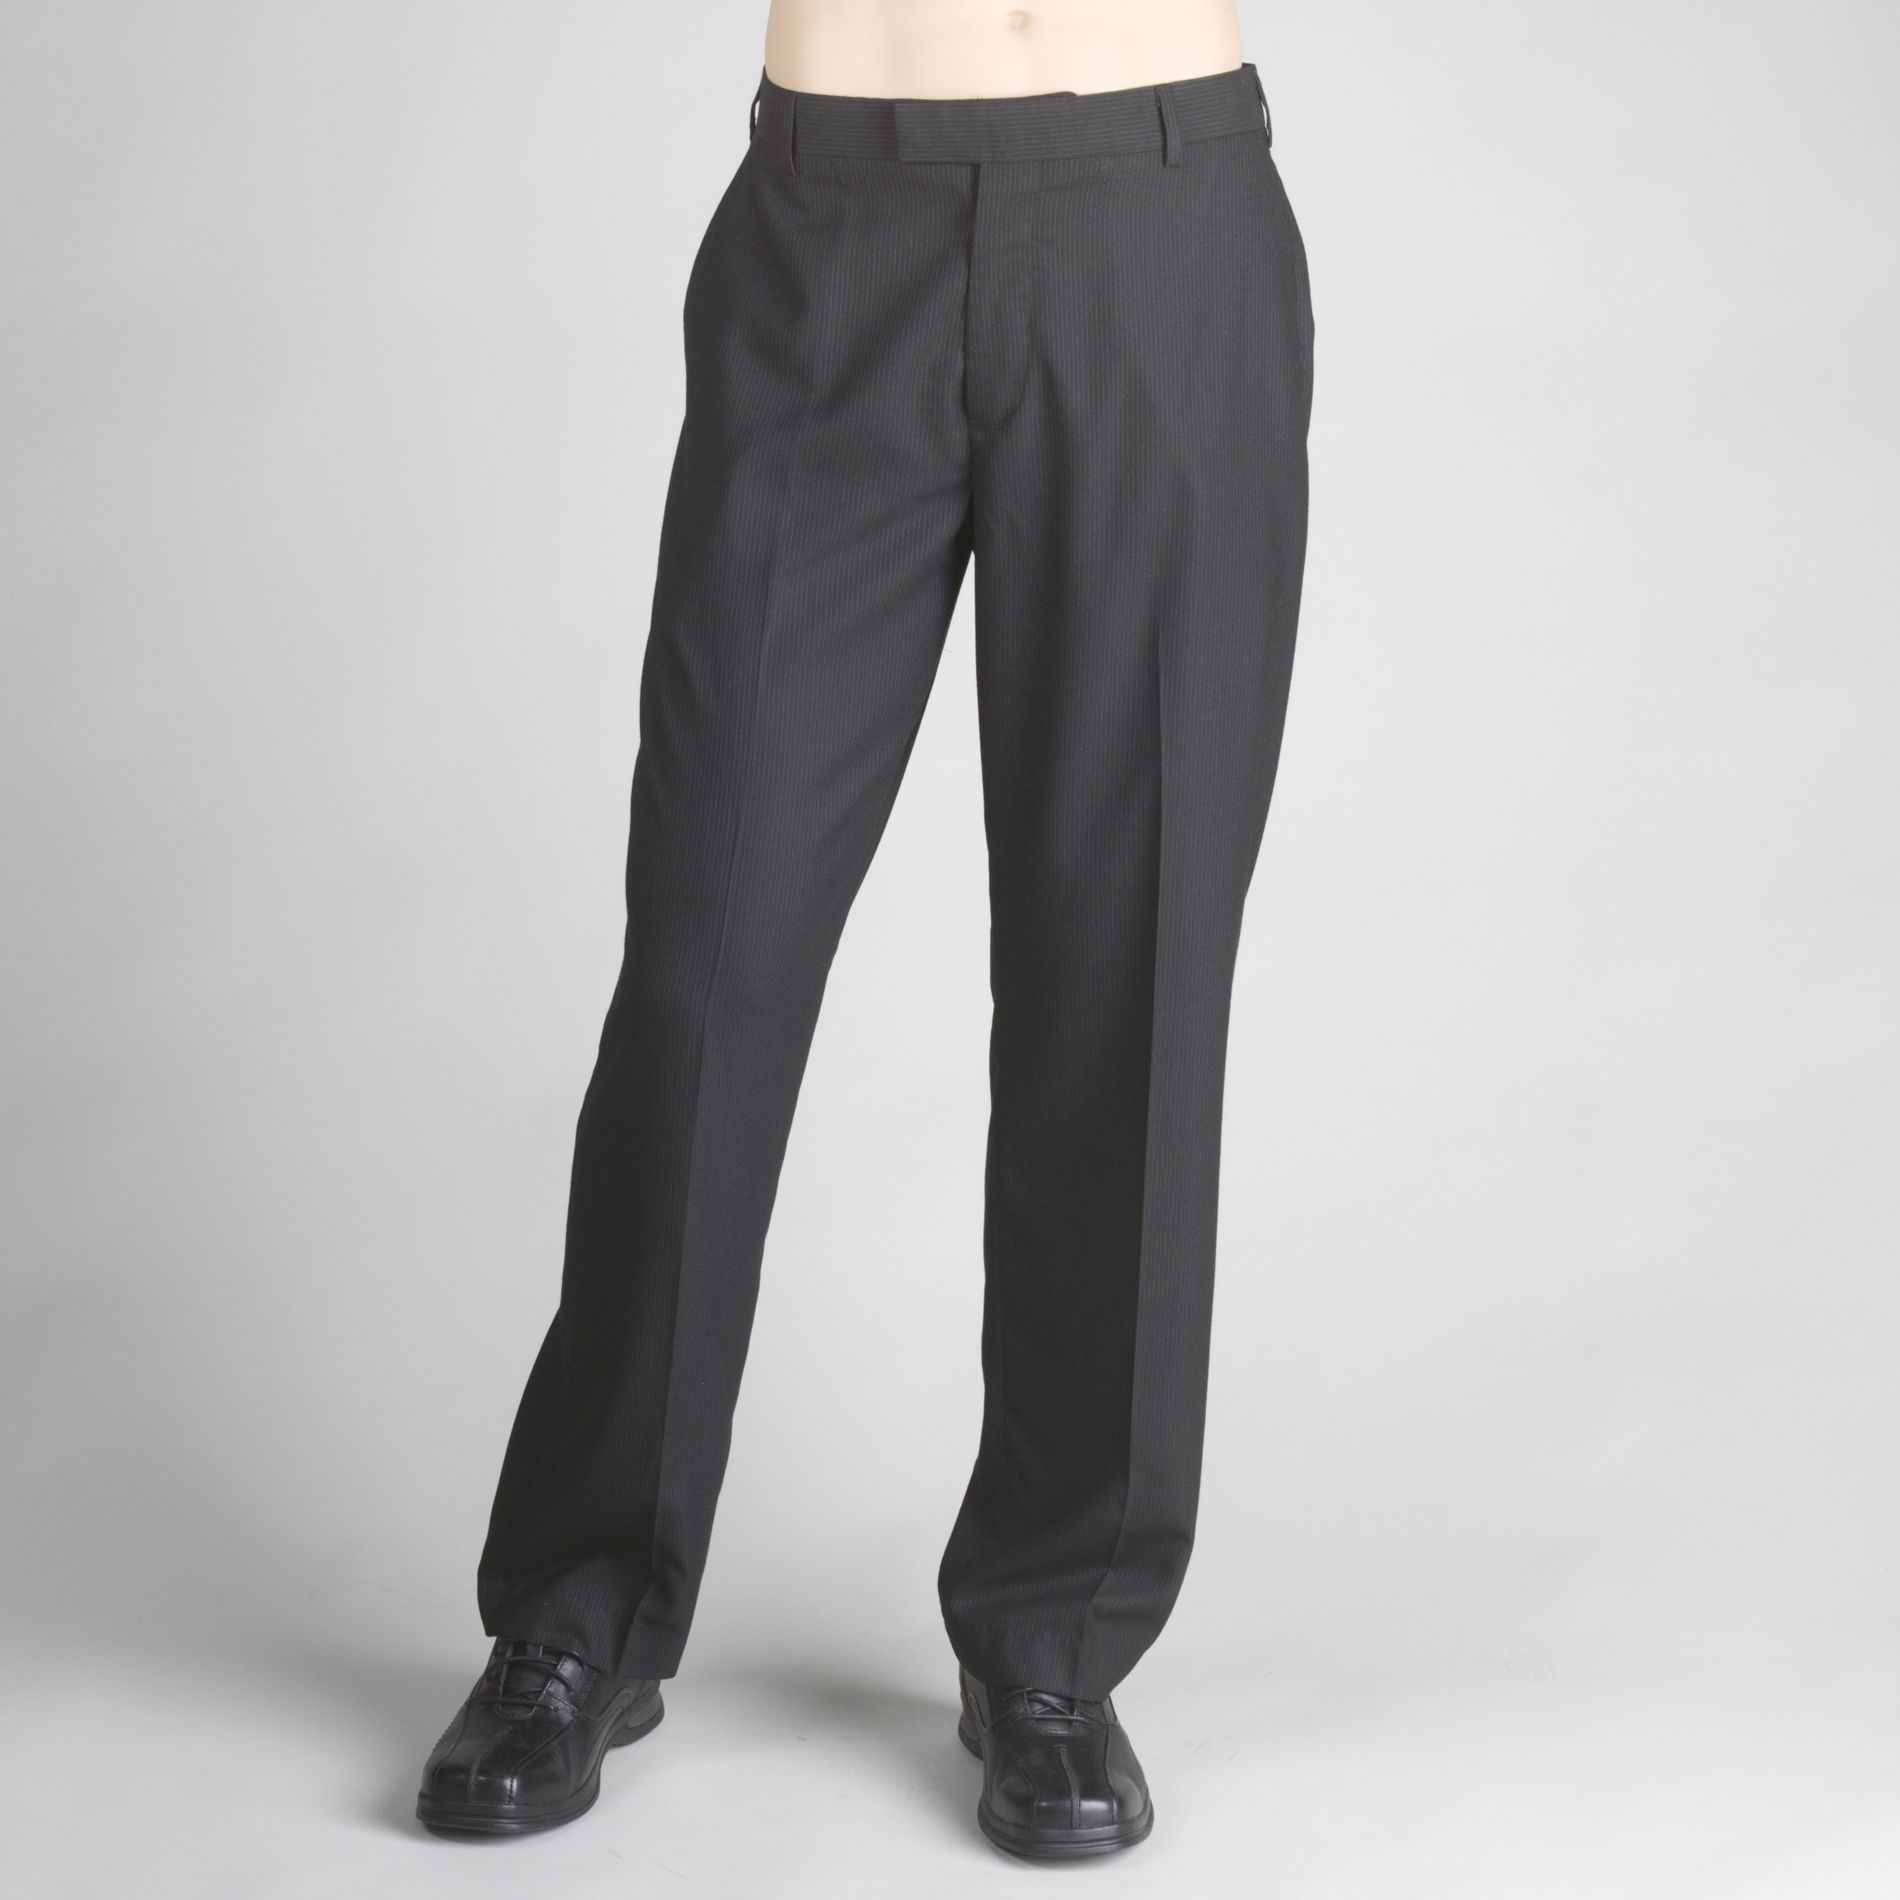 Exclusive mens dress pants